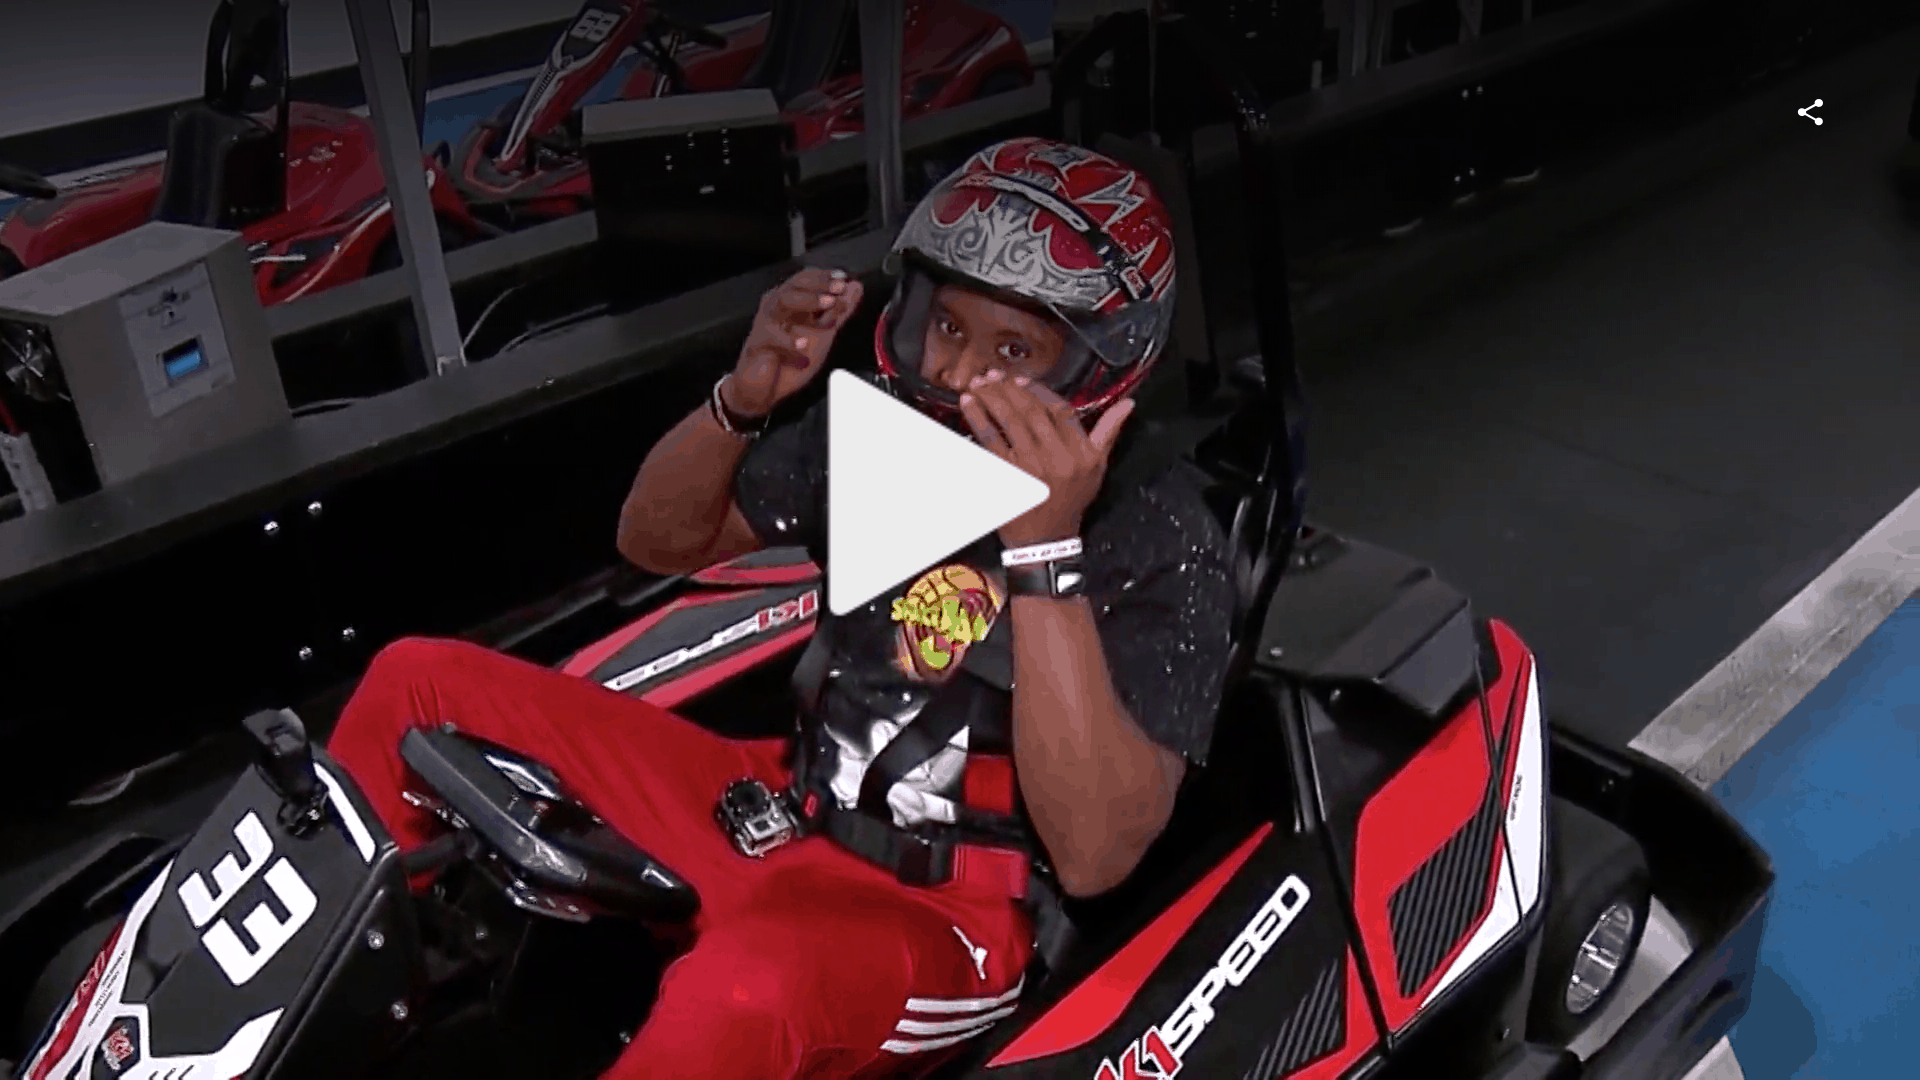 Courtland Sutton sits in a go kart at K1 Speed Denver